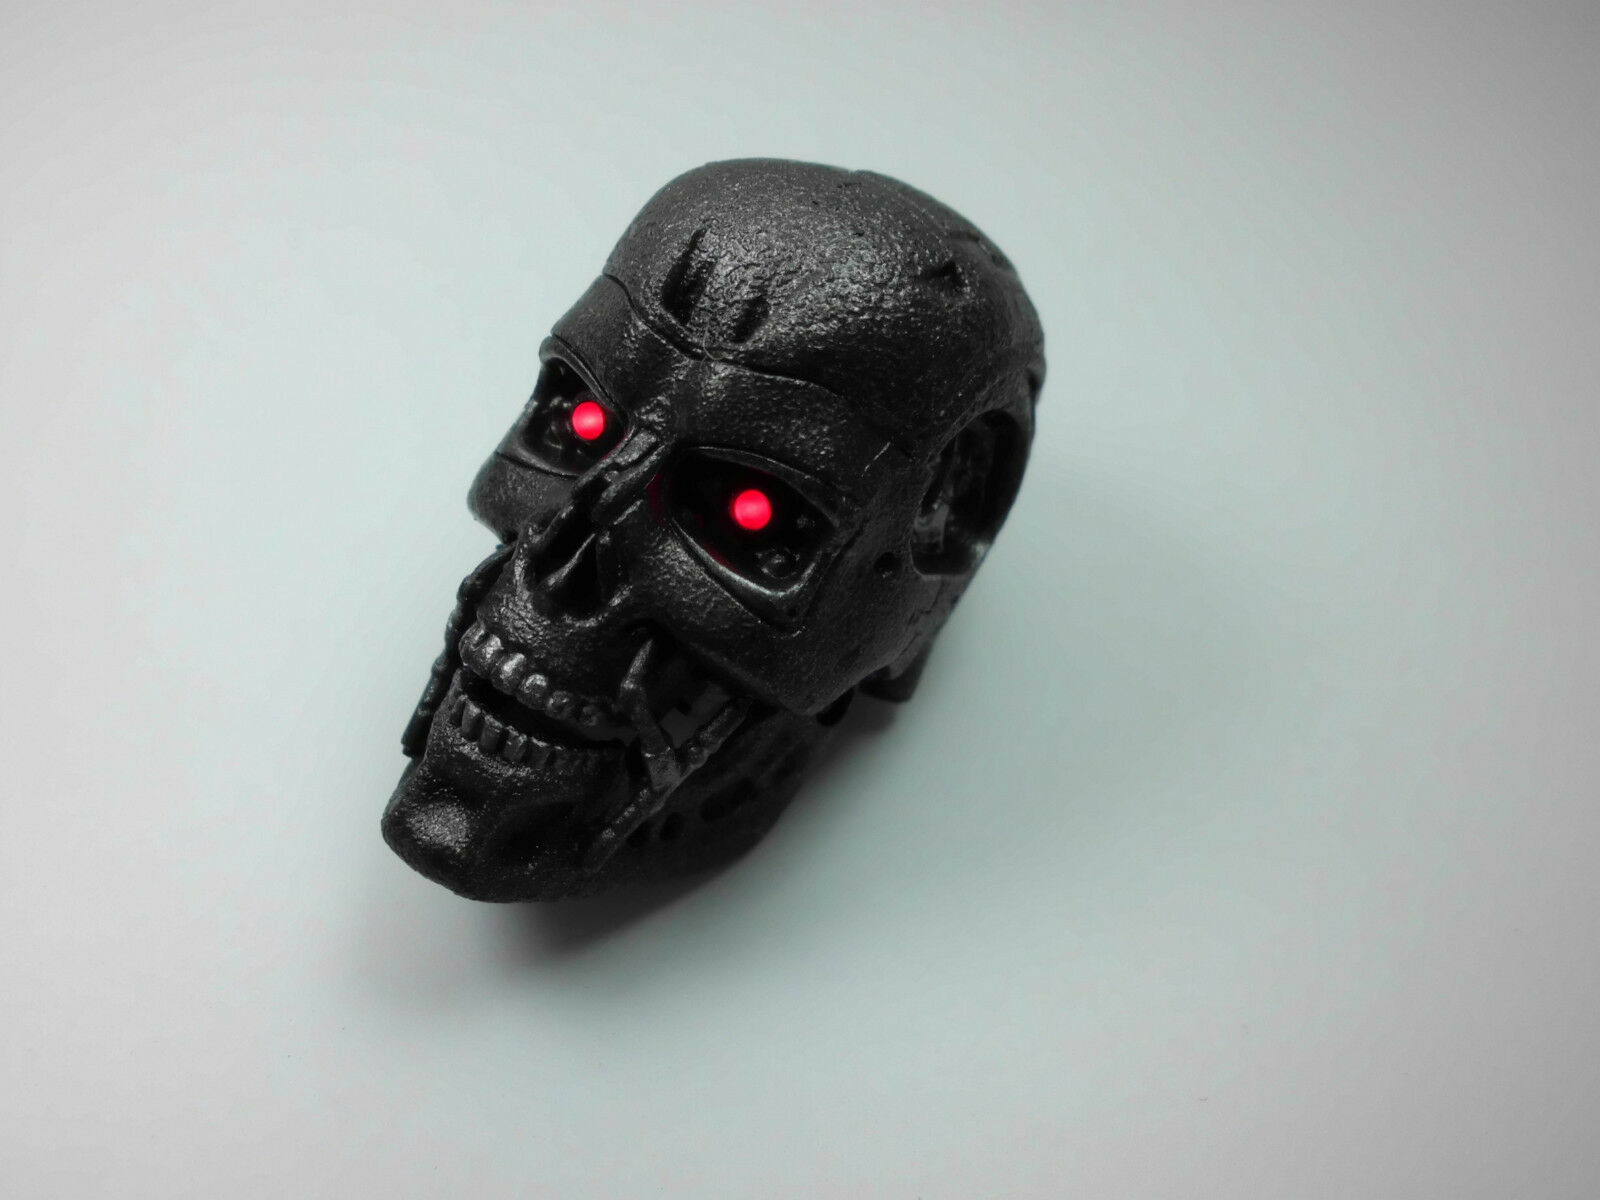 Hot Toys 1 6 Scale DX13 Terminator T-600 Perfect Head Sculpt